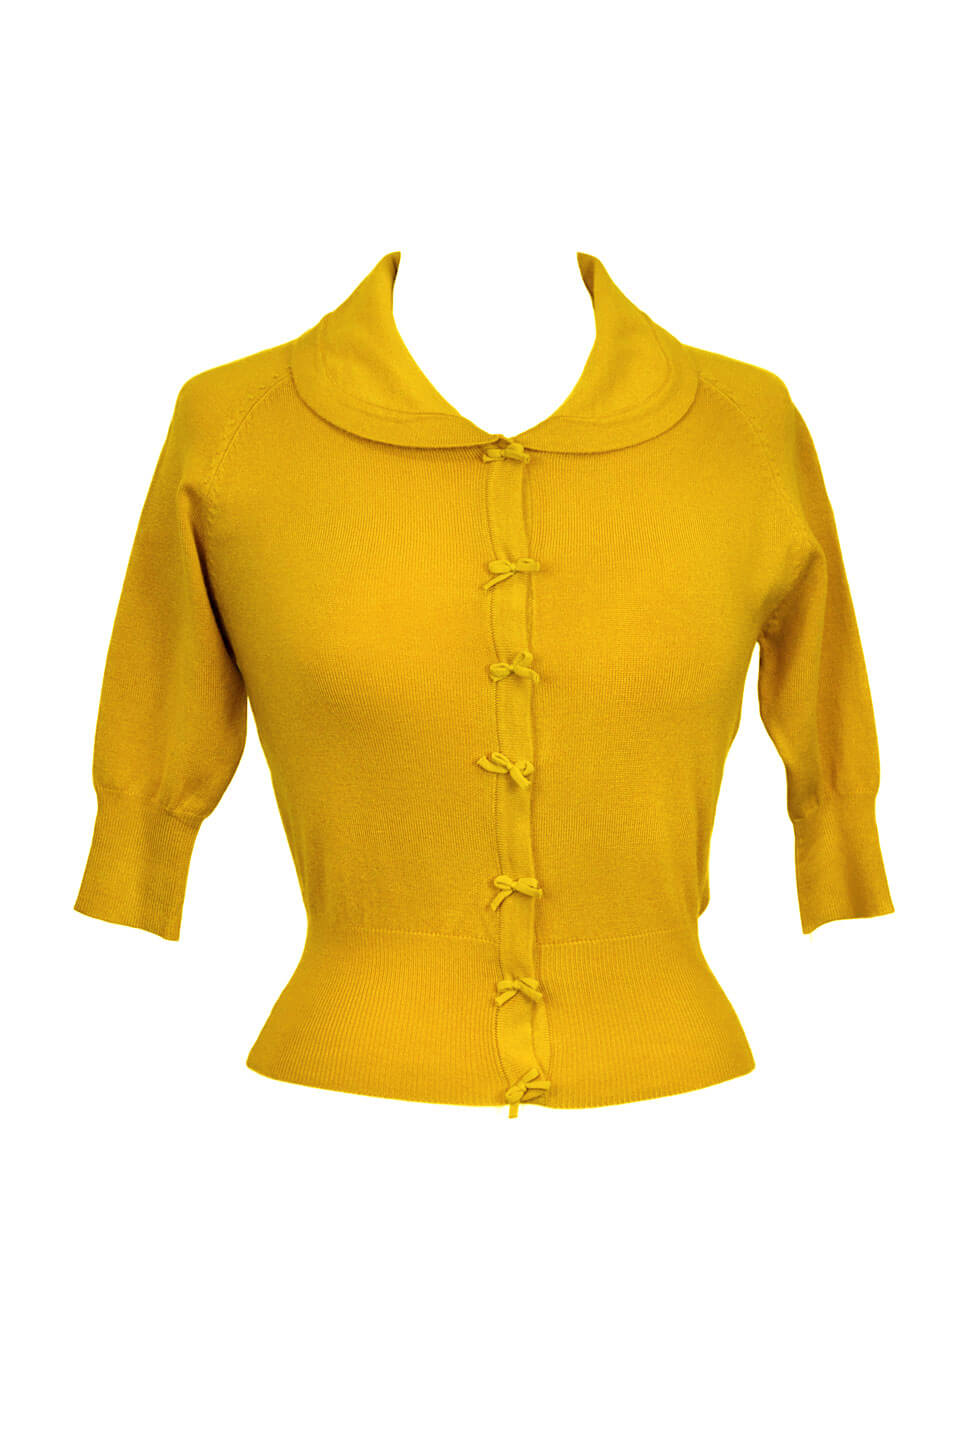 Cropped quarter length mustard yellow cardigan with bow details -1950s style | Weekend Doll